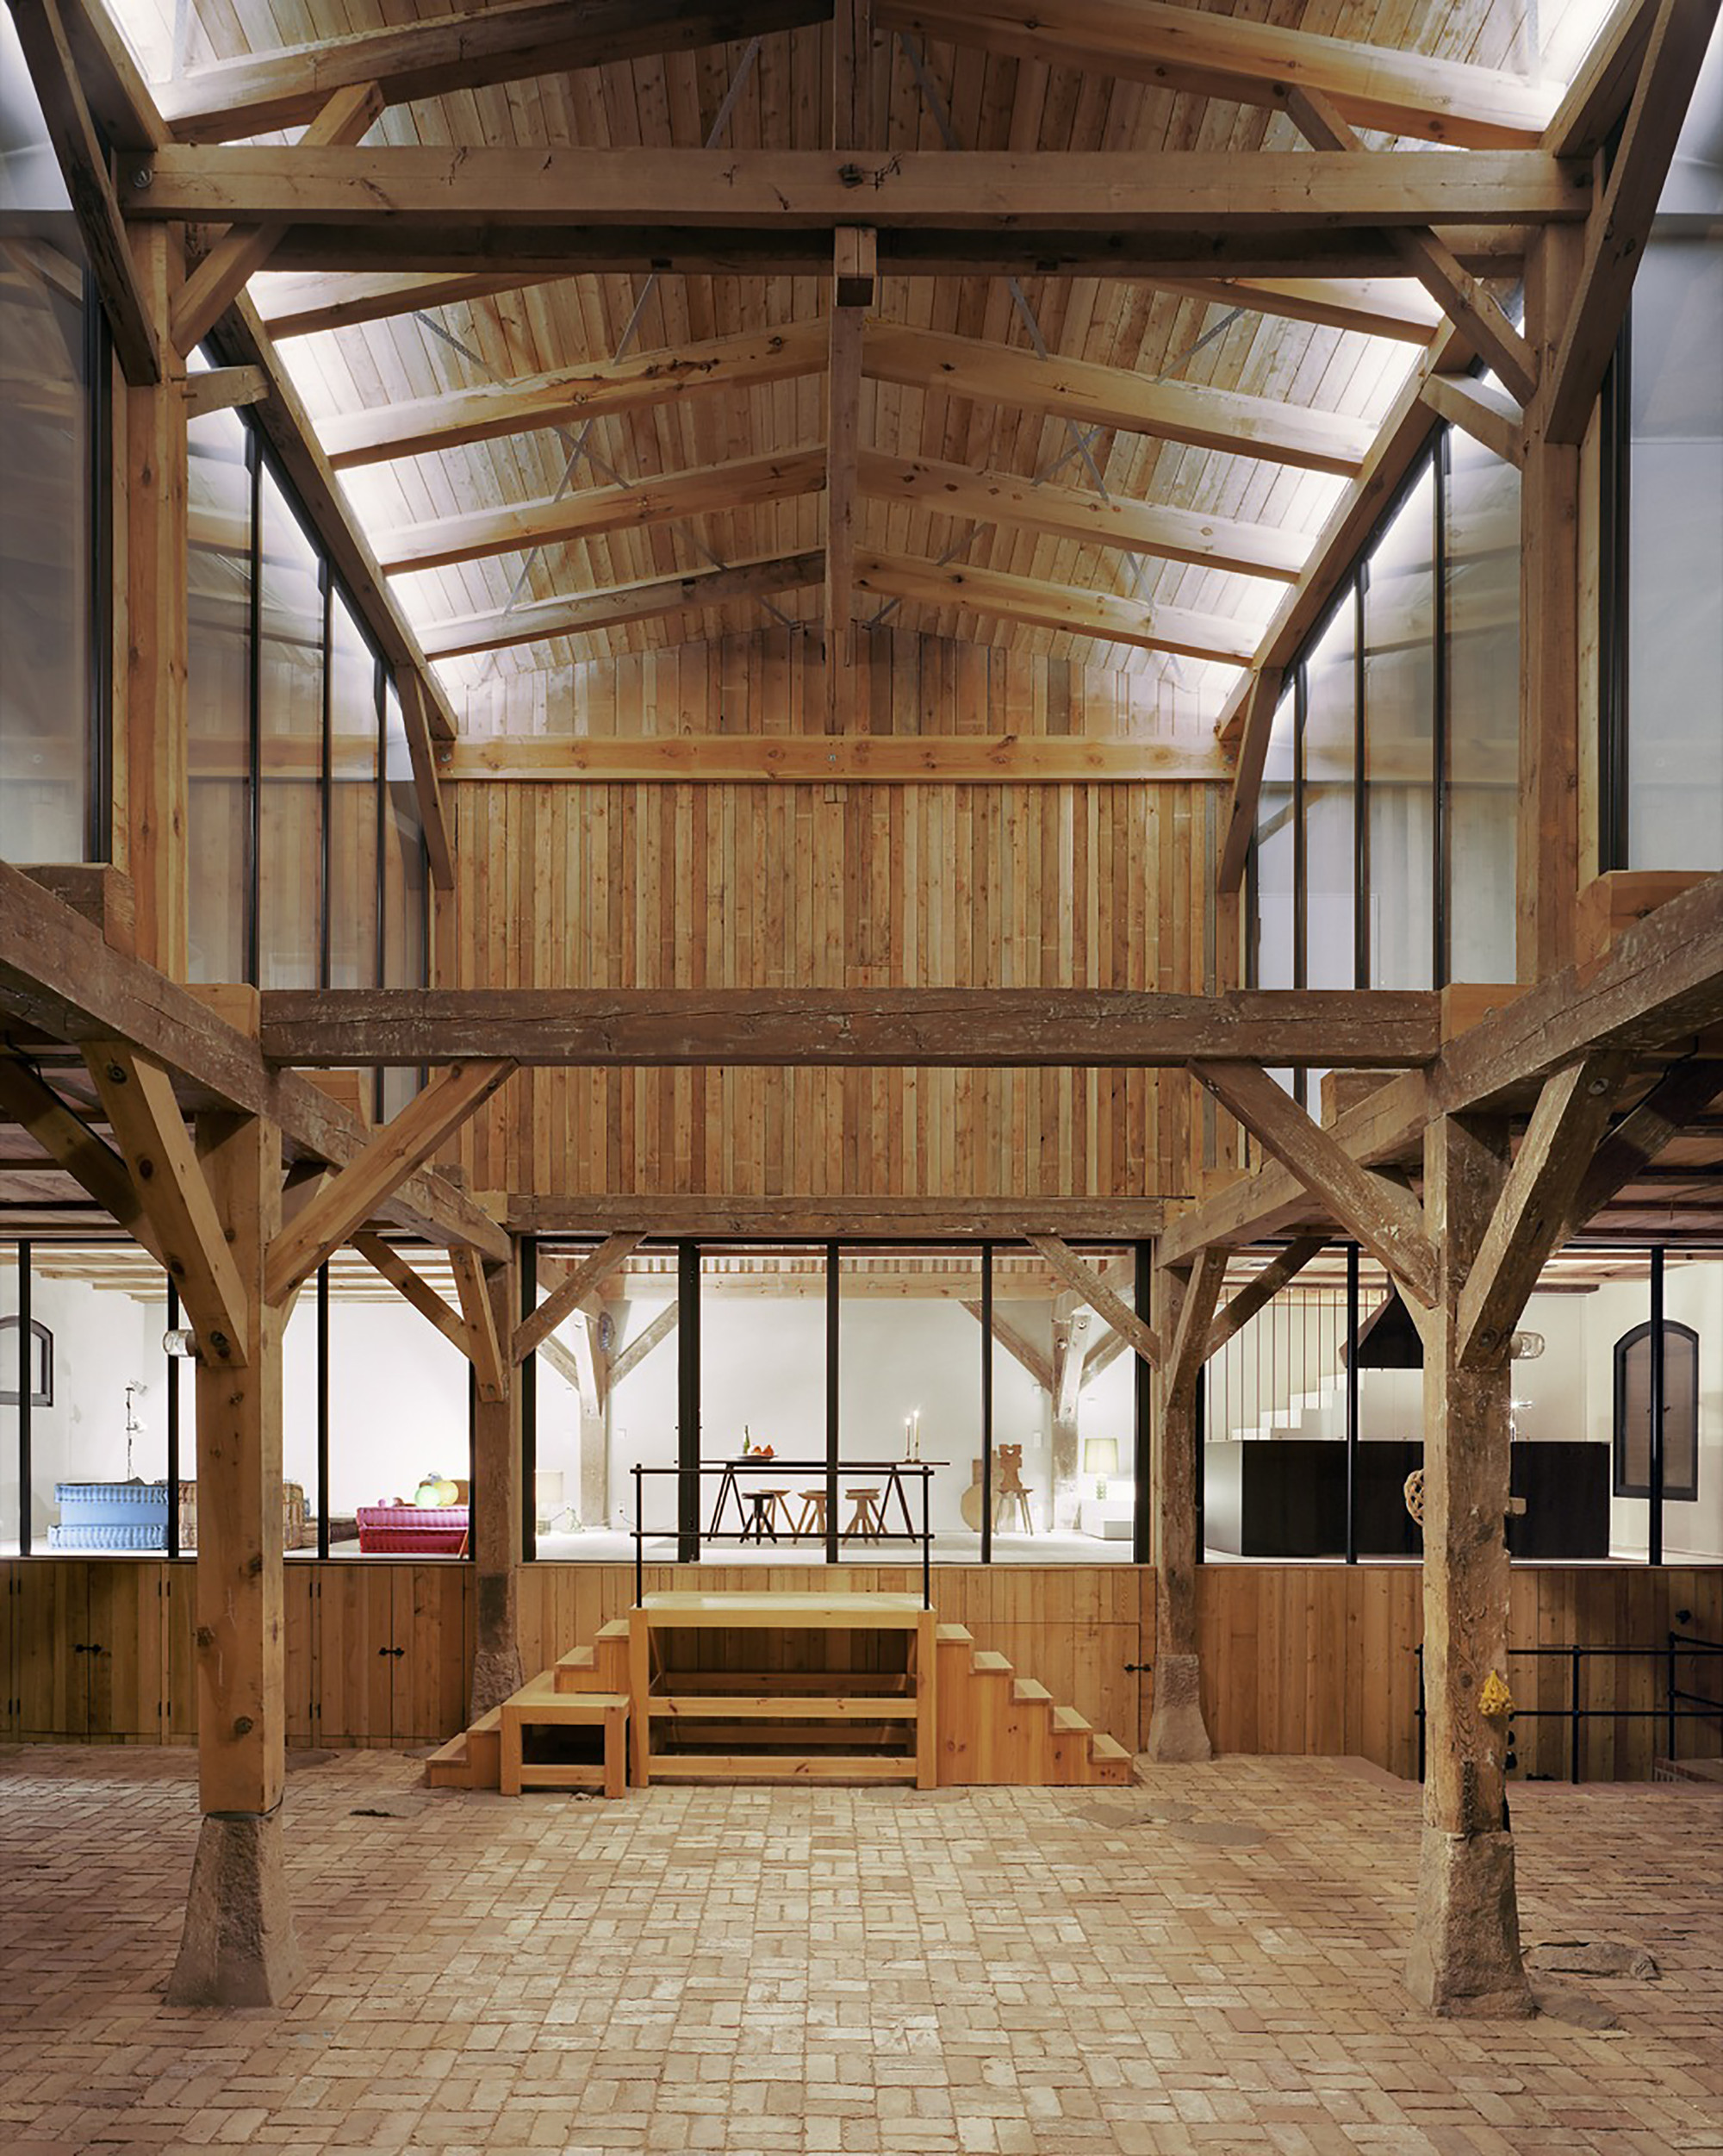 garage barn ideas - Gallery of LANDHAUS Thomas Kröger Architekt 13